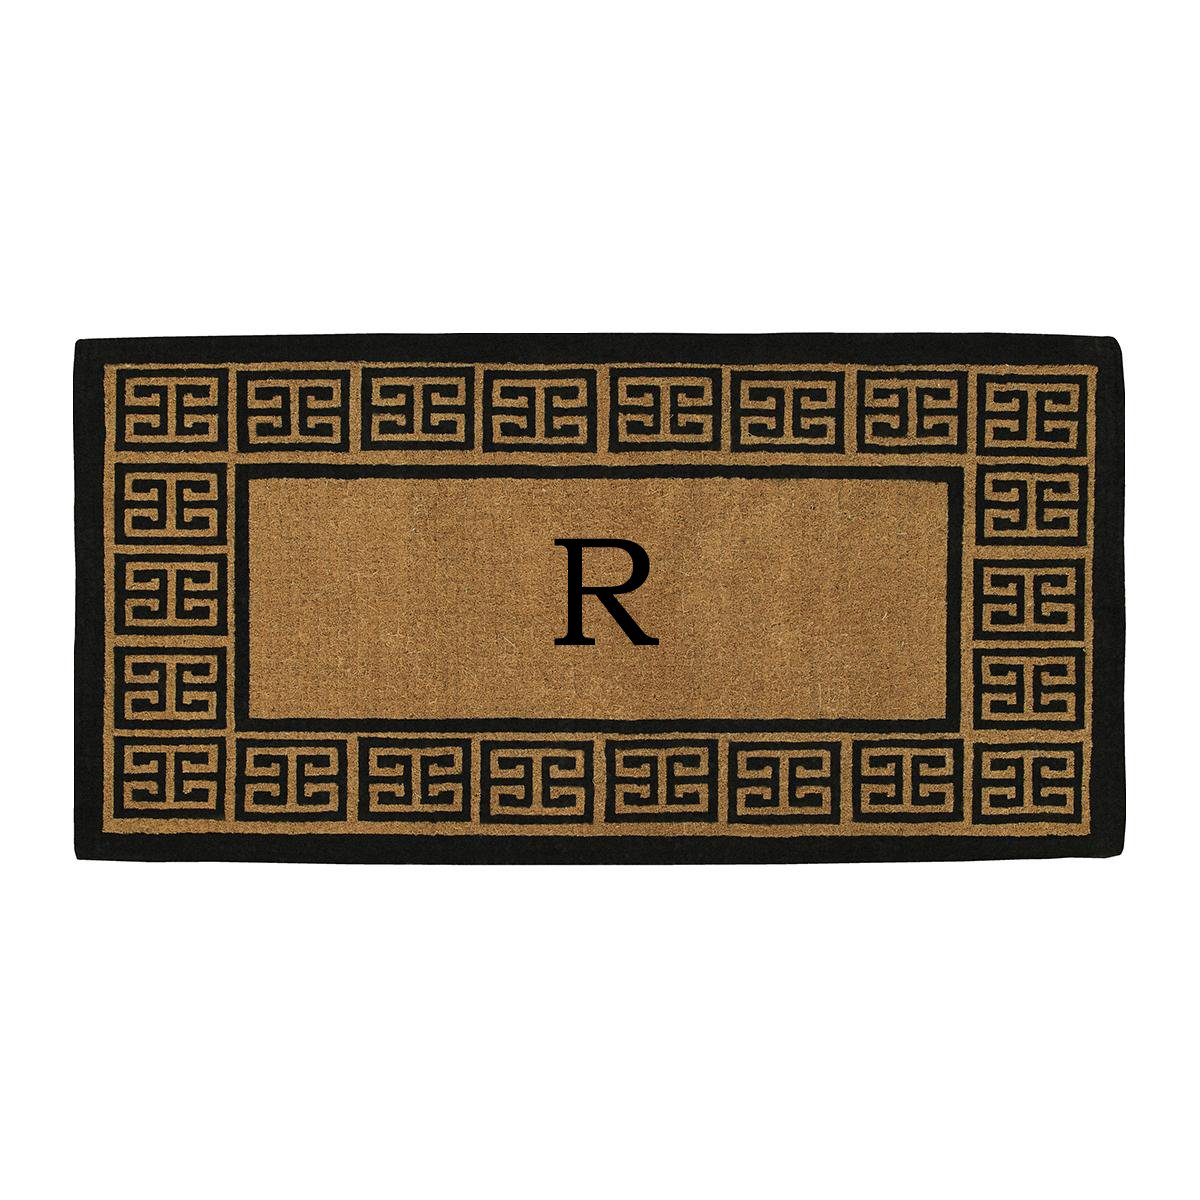 Home & More 180093672R The Grecian Extra-thick Doormat, 36'' x 72'' x 1.50'', Monogrammed Letter R, Natural/Black